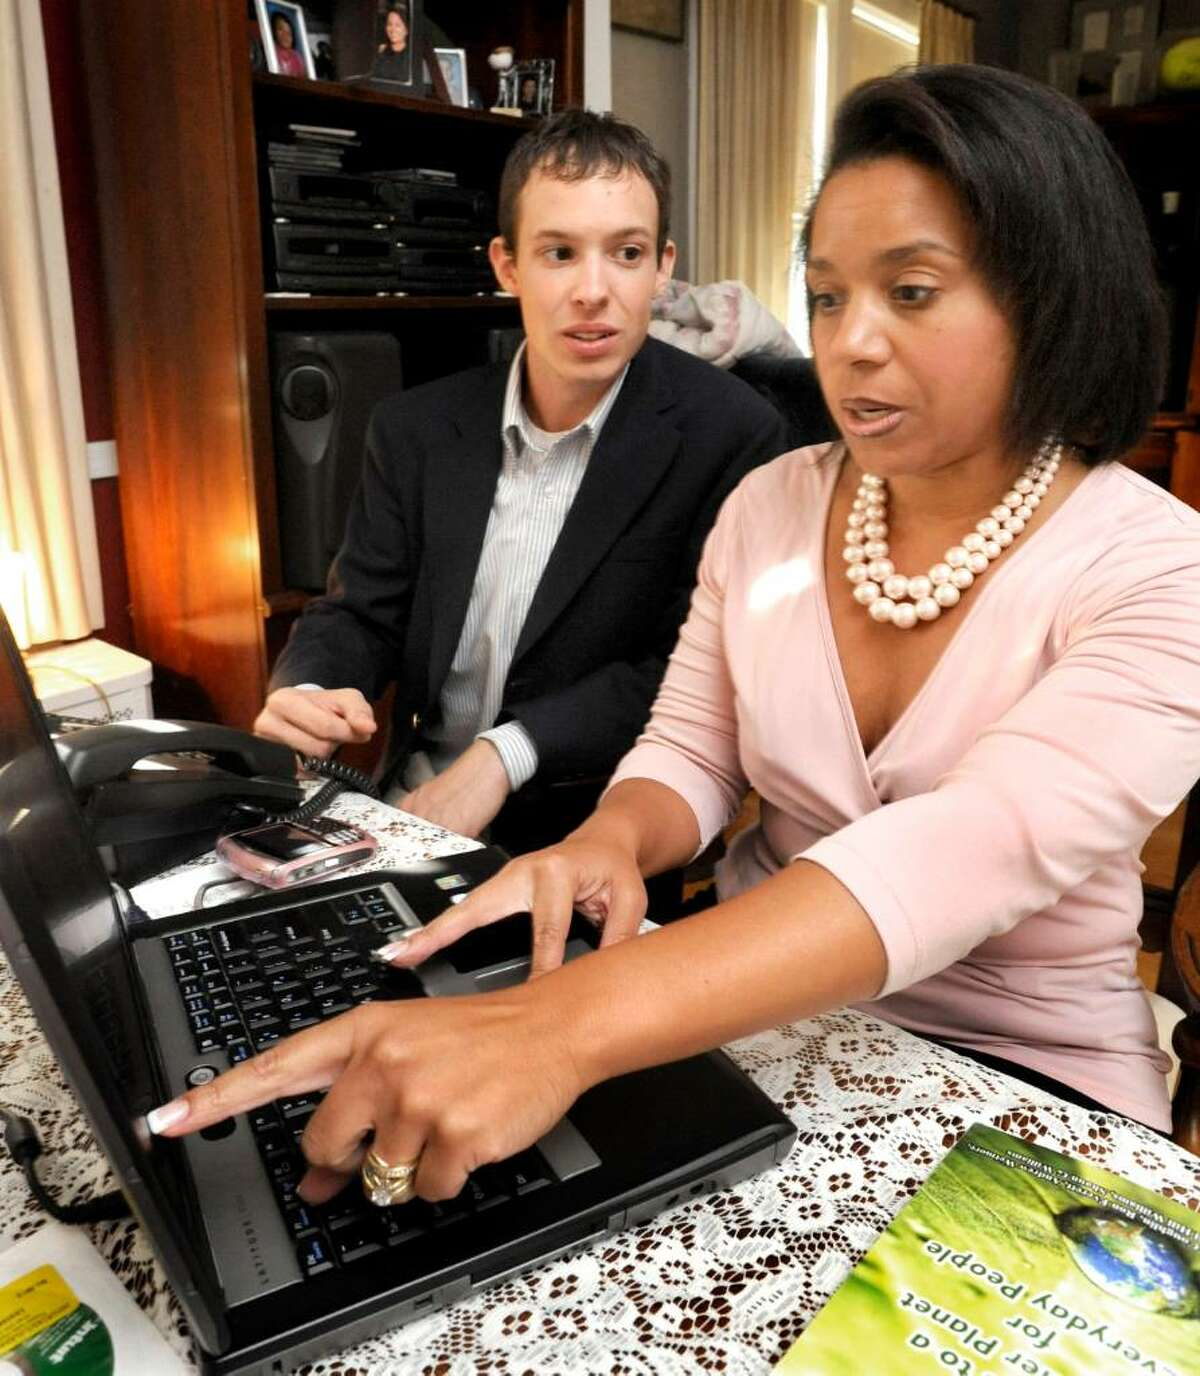 Andrew Wetmore and Gail Hill Williams discuss layout for a book they are co-authoring in Williams home office in danbury on Aug. 31,2009.